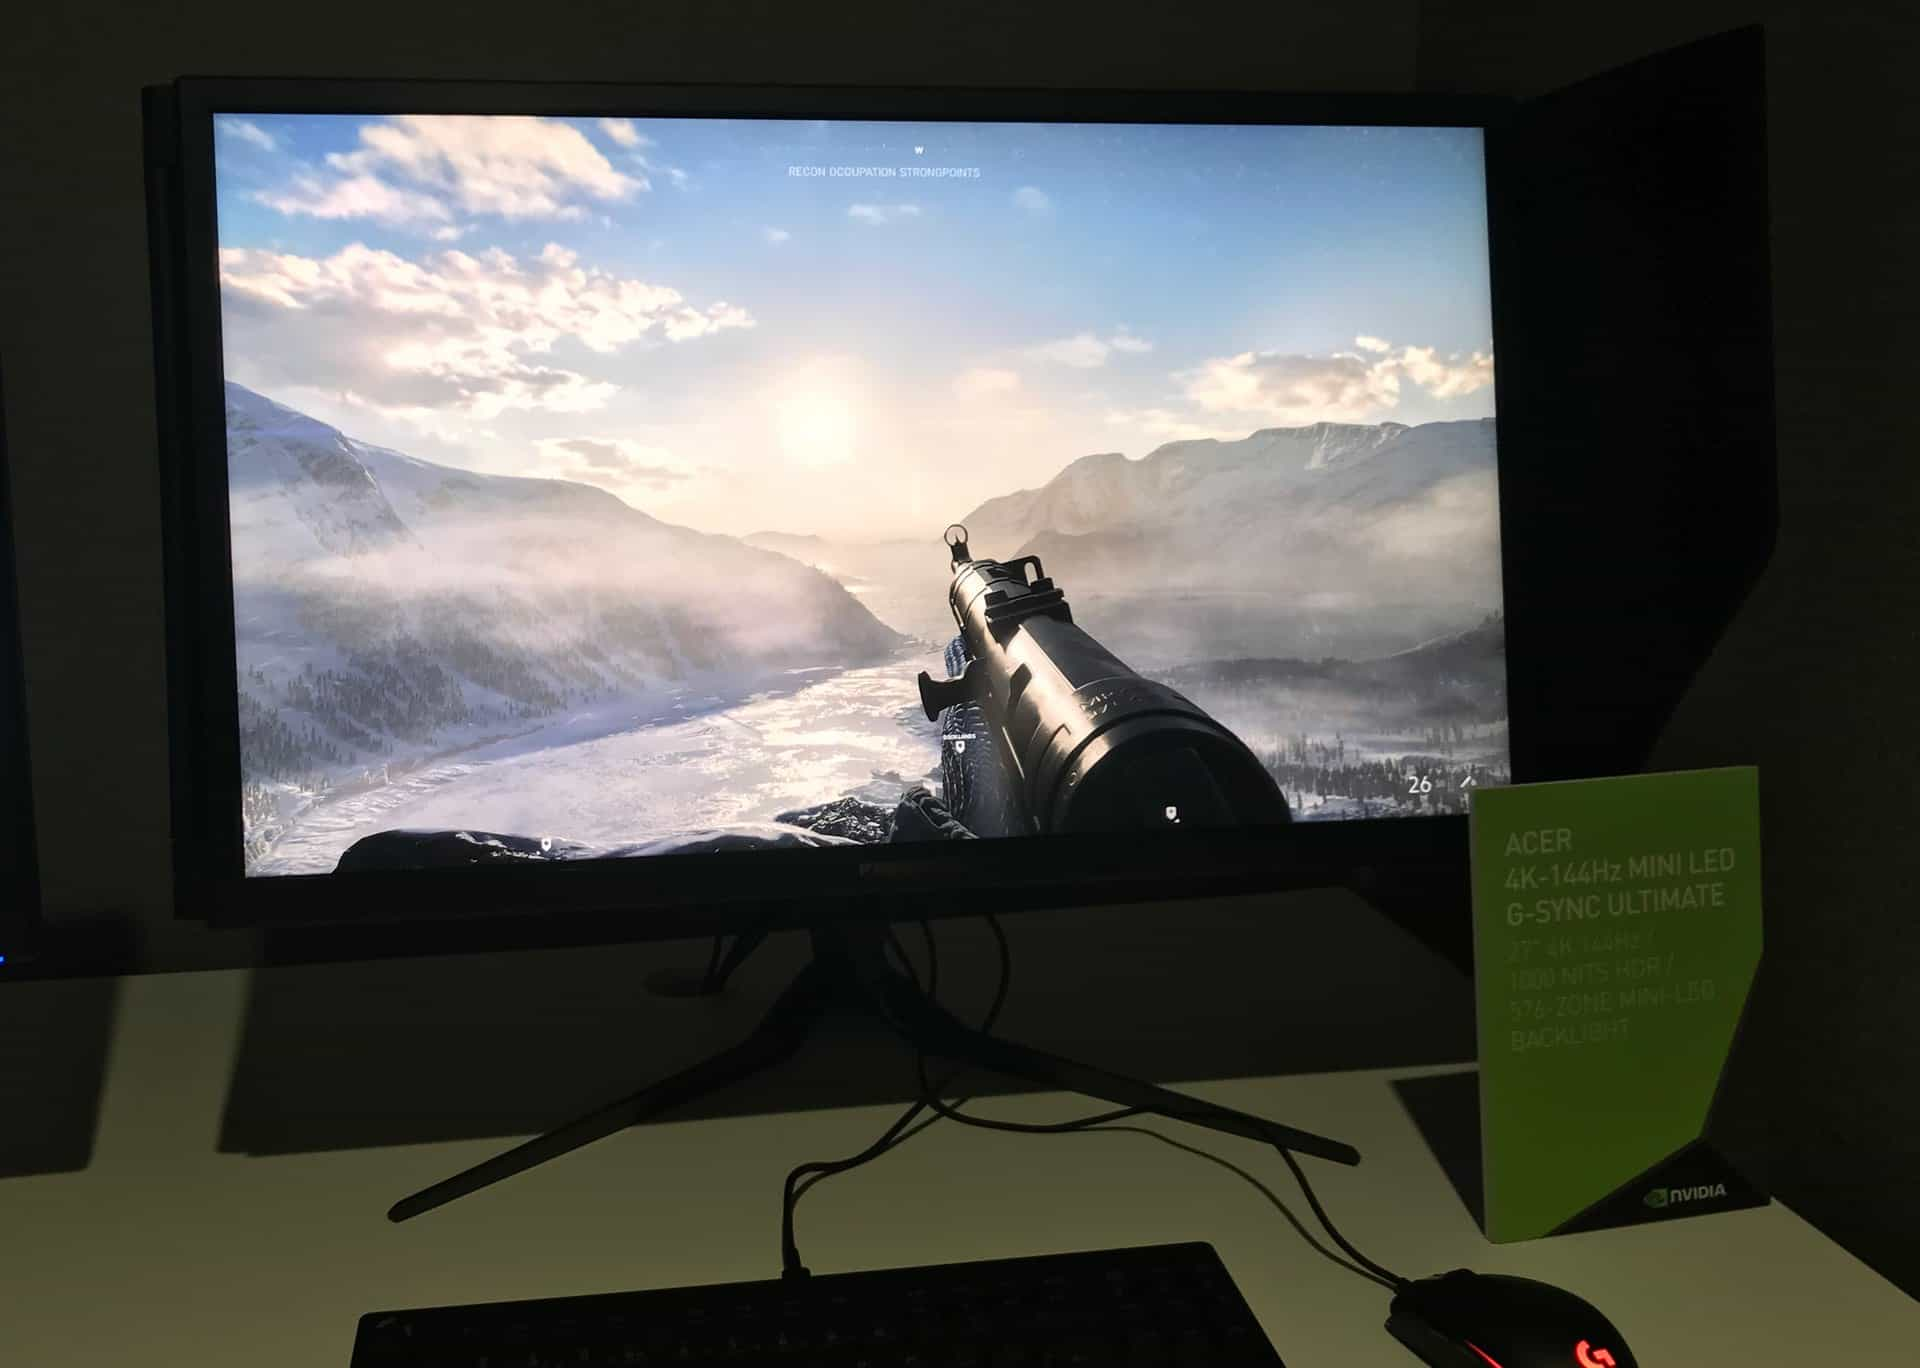 4K miniLED monitor Acer s G-Sync Ultimate (Zdroj: AnandTech)